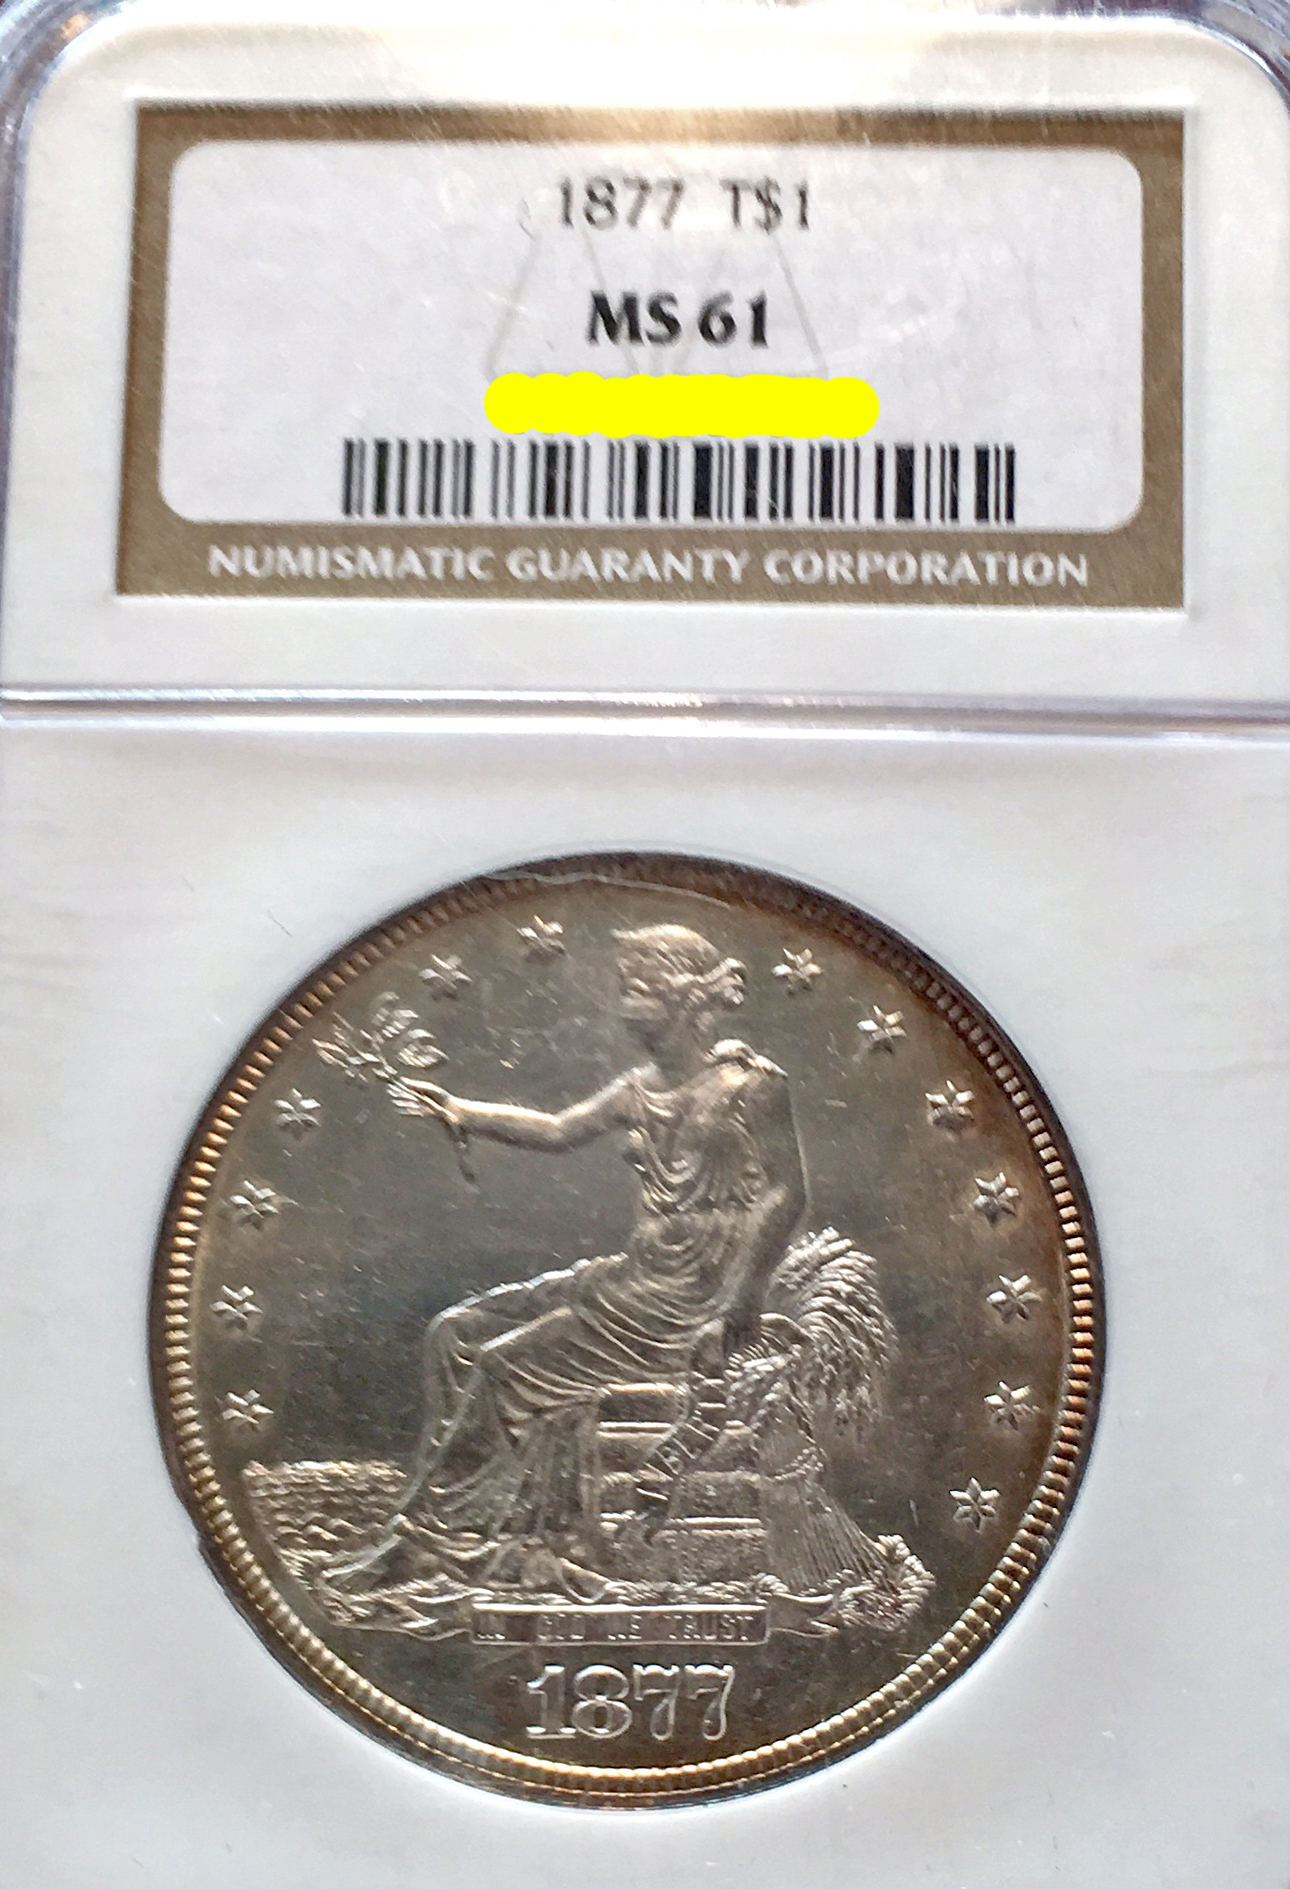 December 2016 Coin Show 1877 Trade Dollar MS-61 NGC